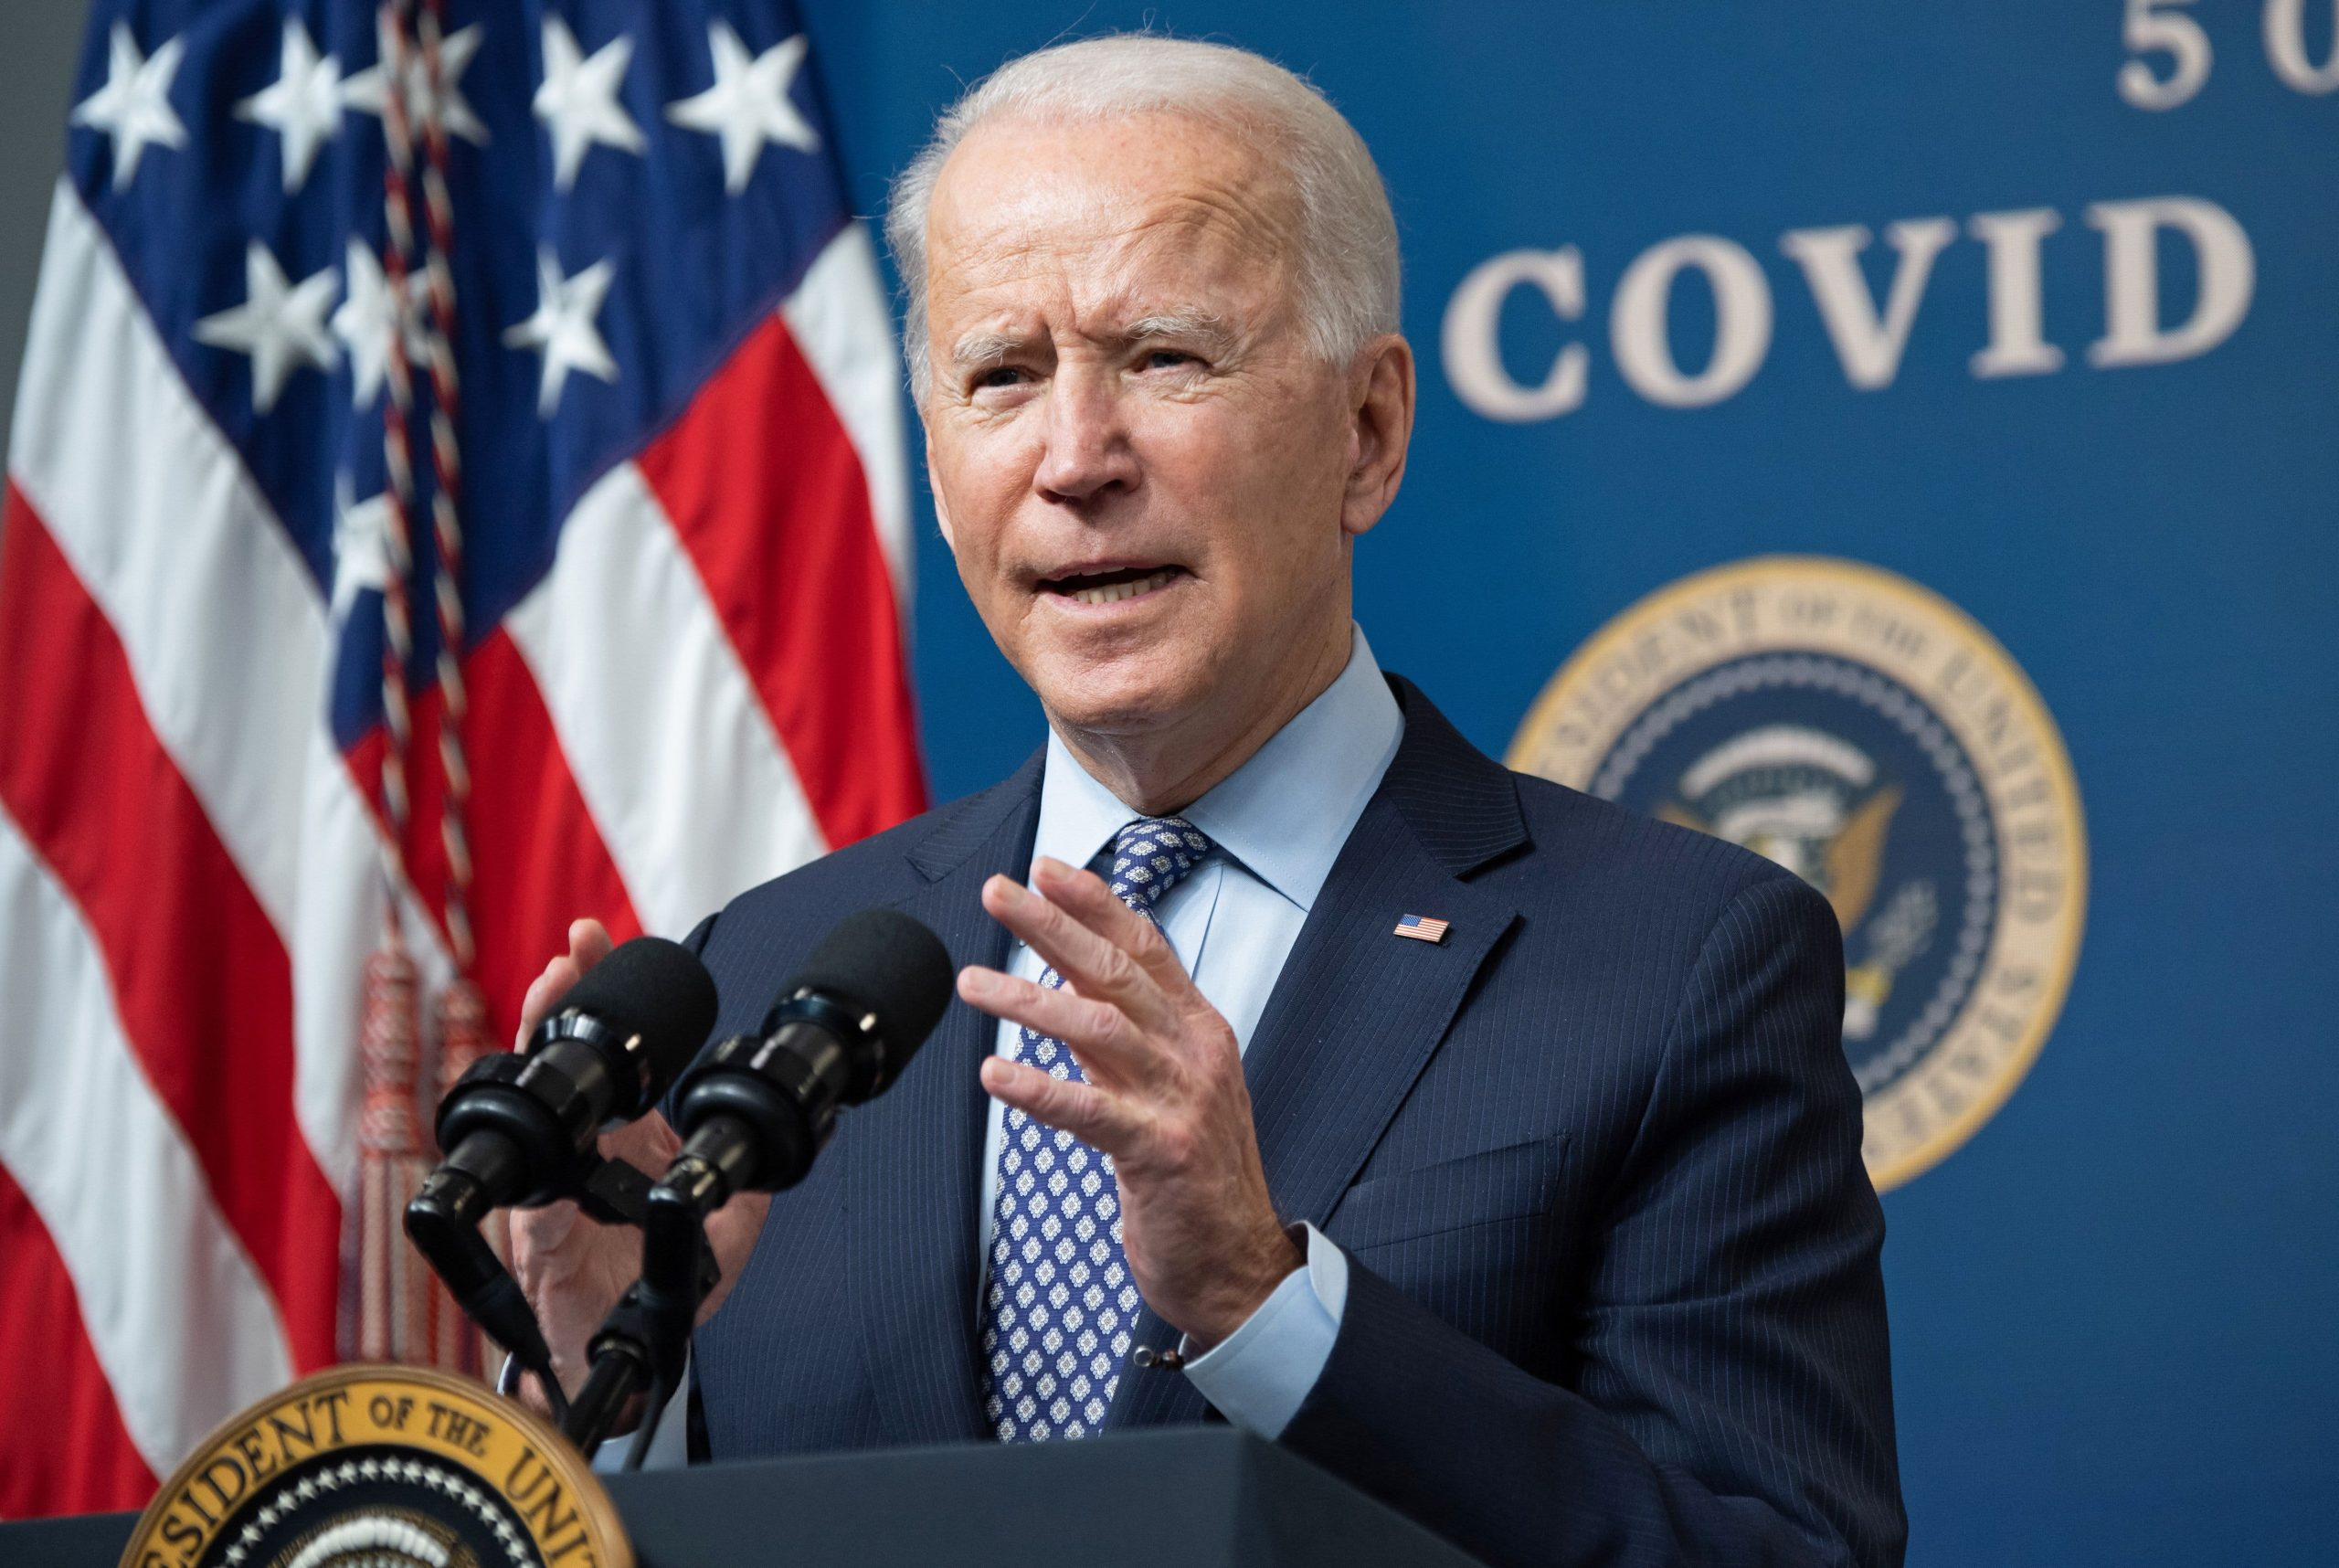 Big Pharma lobbyists launch campaign against Biden over Covid vaccine patent waiver